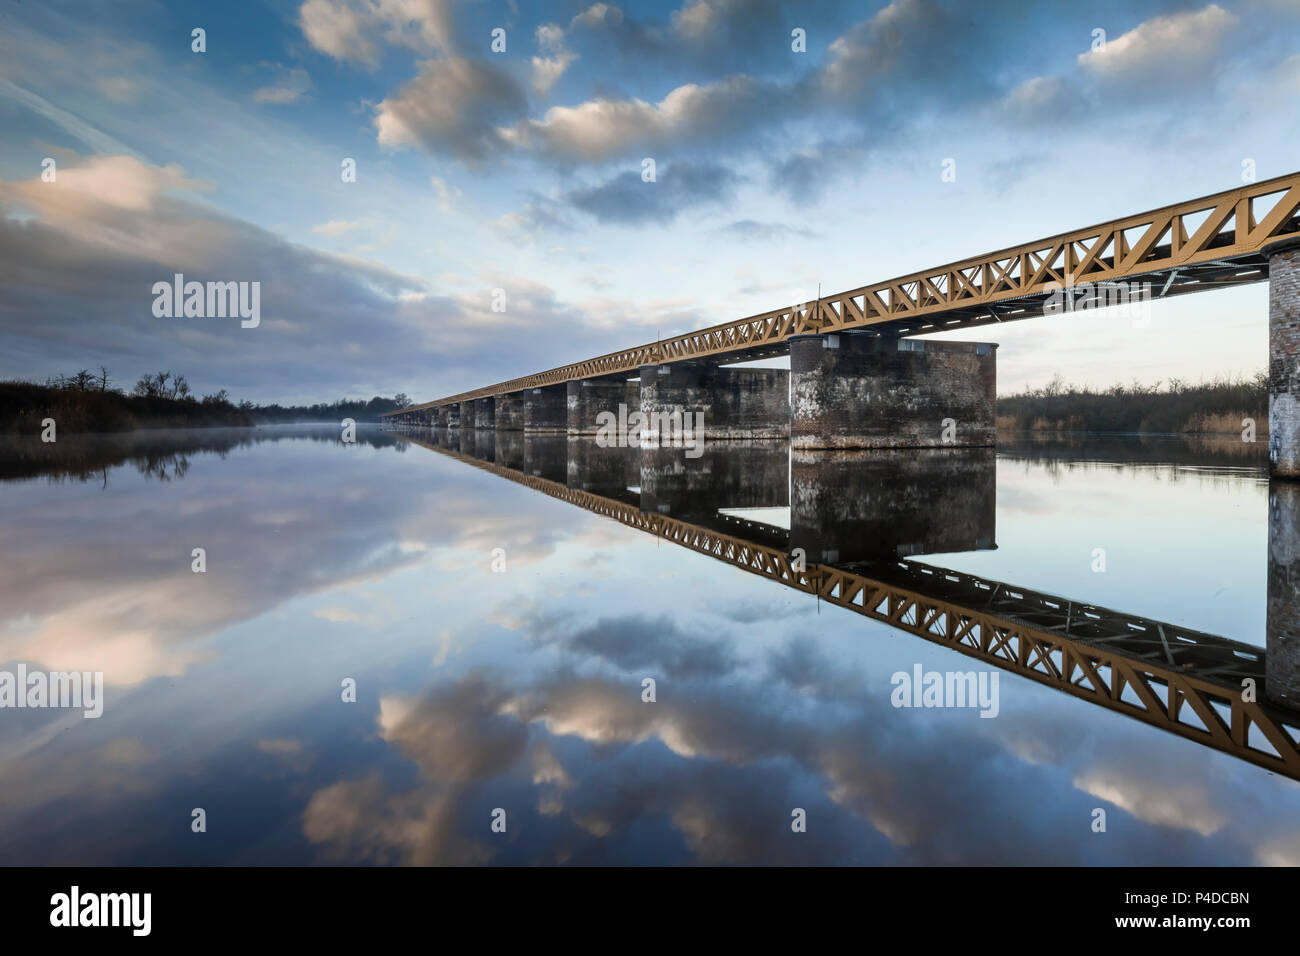 Restored railway bridge in disuse in nature reserve De Moerputten, Den Bosch, The Netherlands - Stock Image